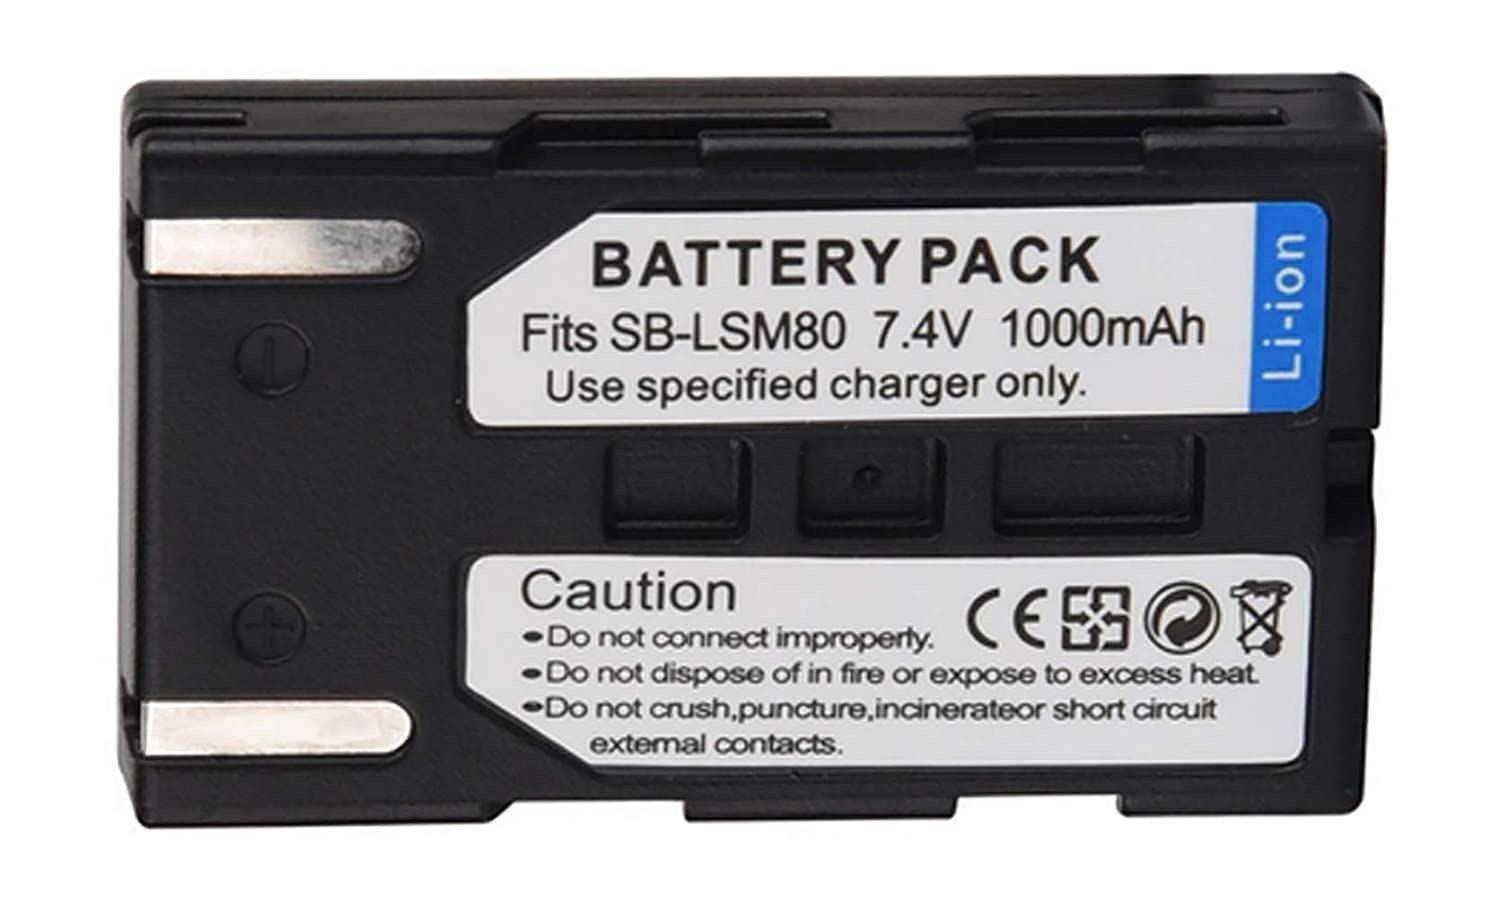 VP-D455i Digital Camcorder VP-D454 Battery Charger for Samsung VP-D451 VP-D455 VP-D453